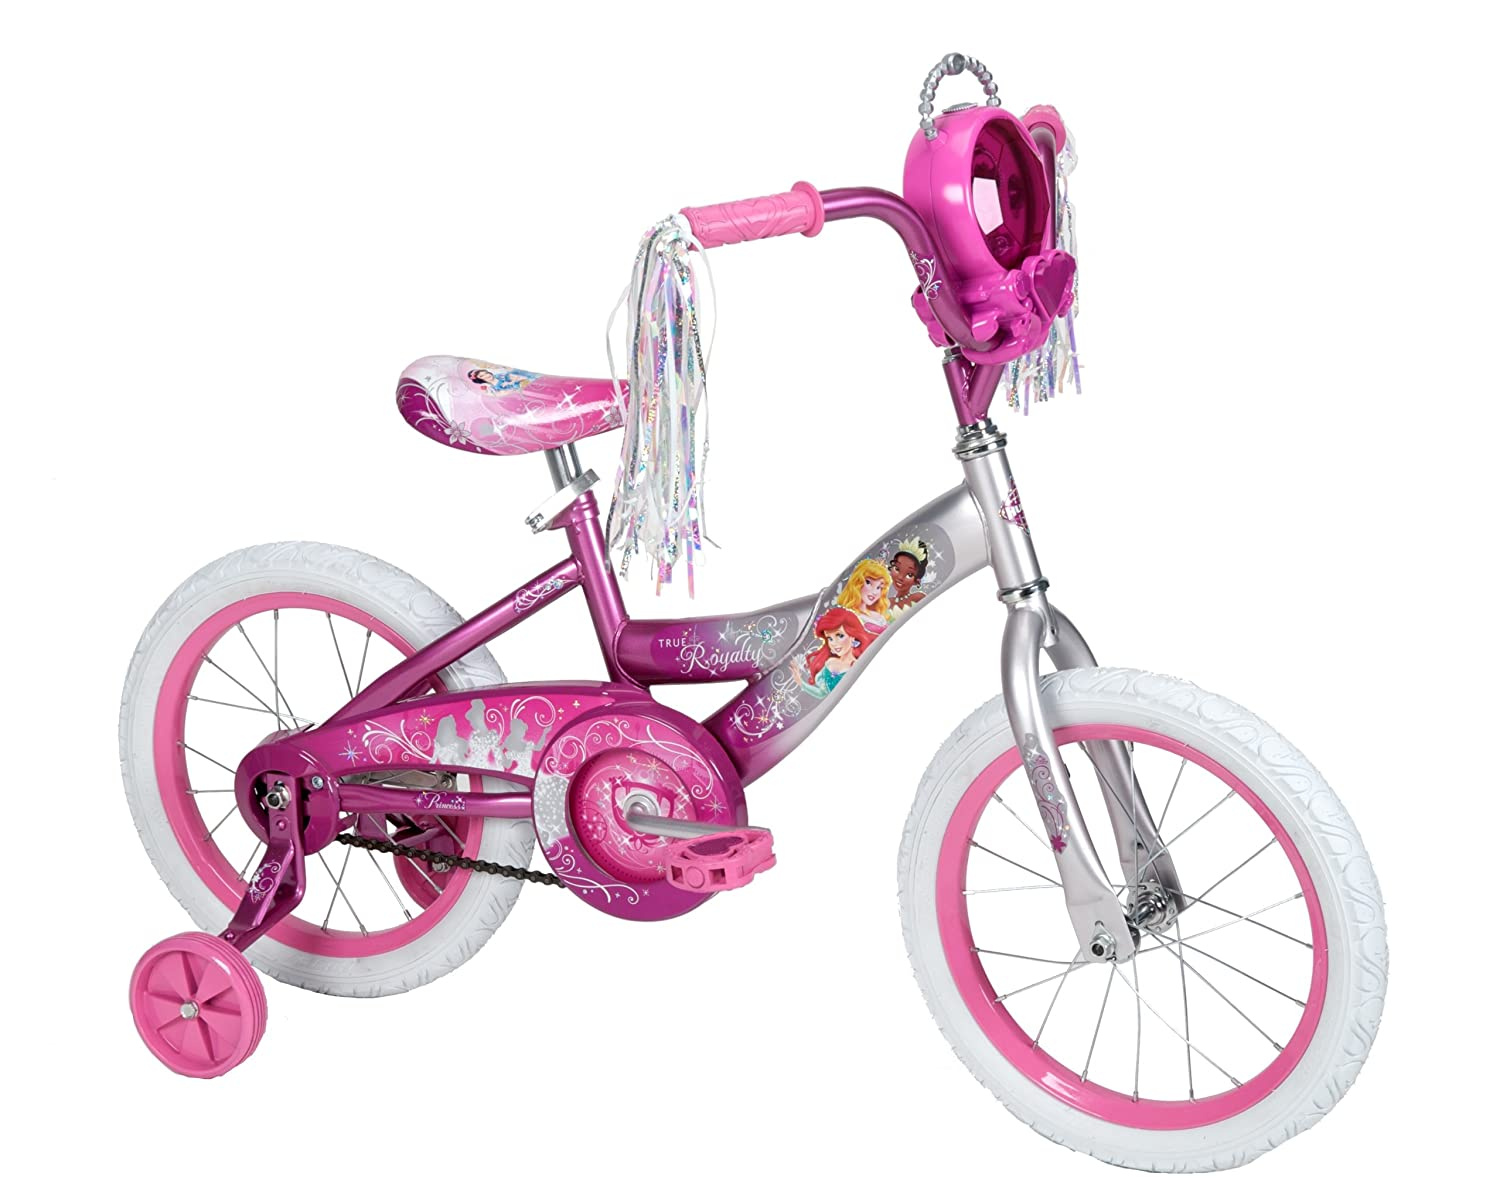 Disney Princess Bikes 16 Inch Princess Bicycle Inch